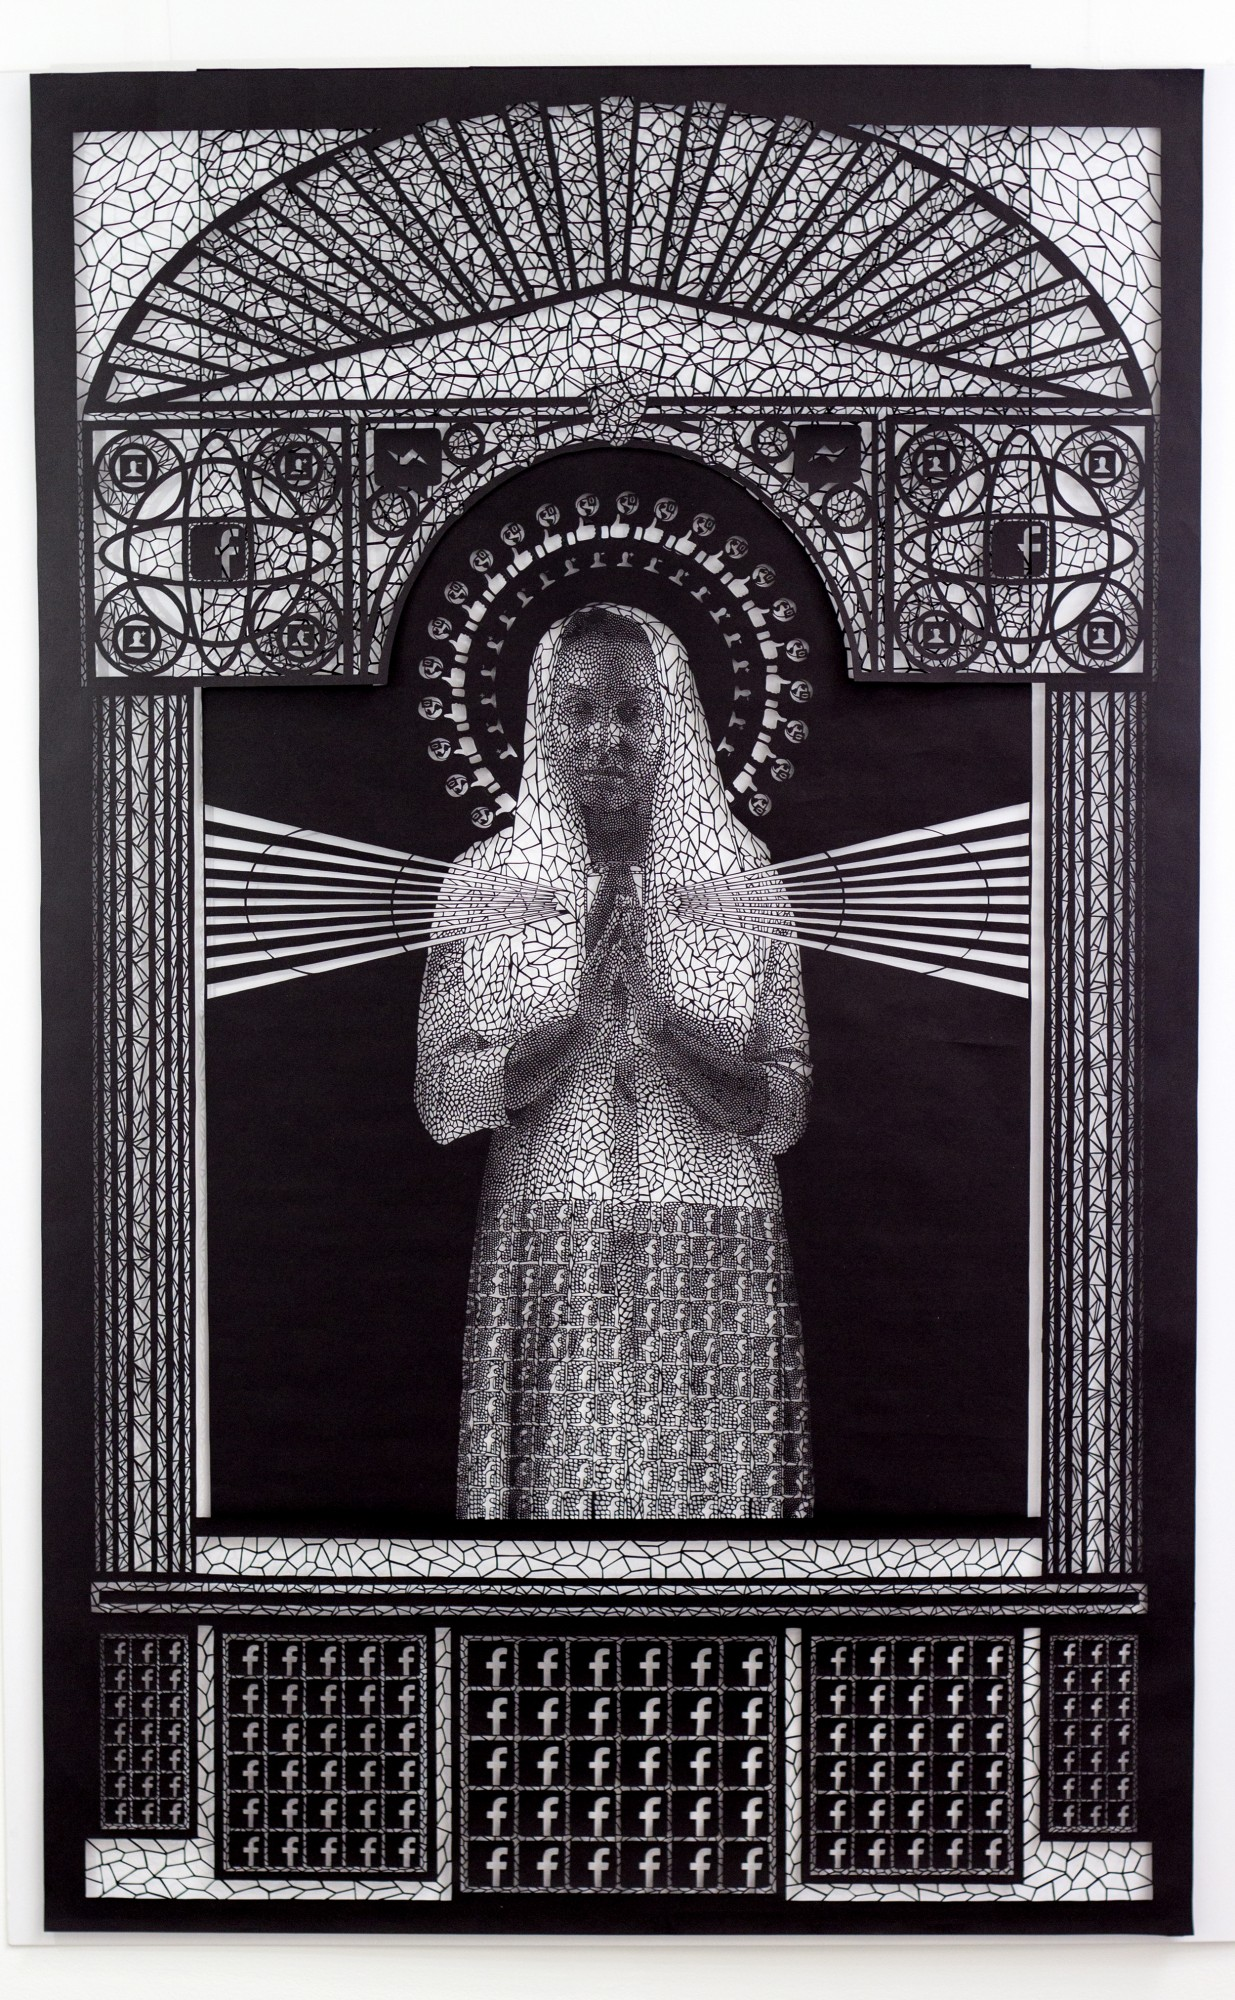 Intricate Paper Cut Social Media Iconography Meshed With Religious Art by Carlo Fantin - Mary